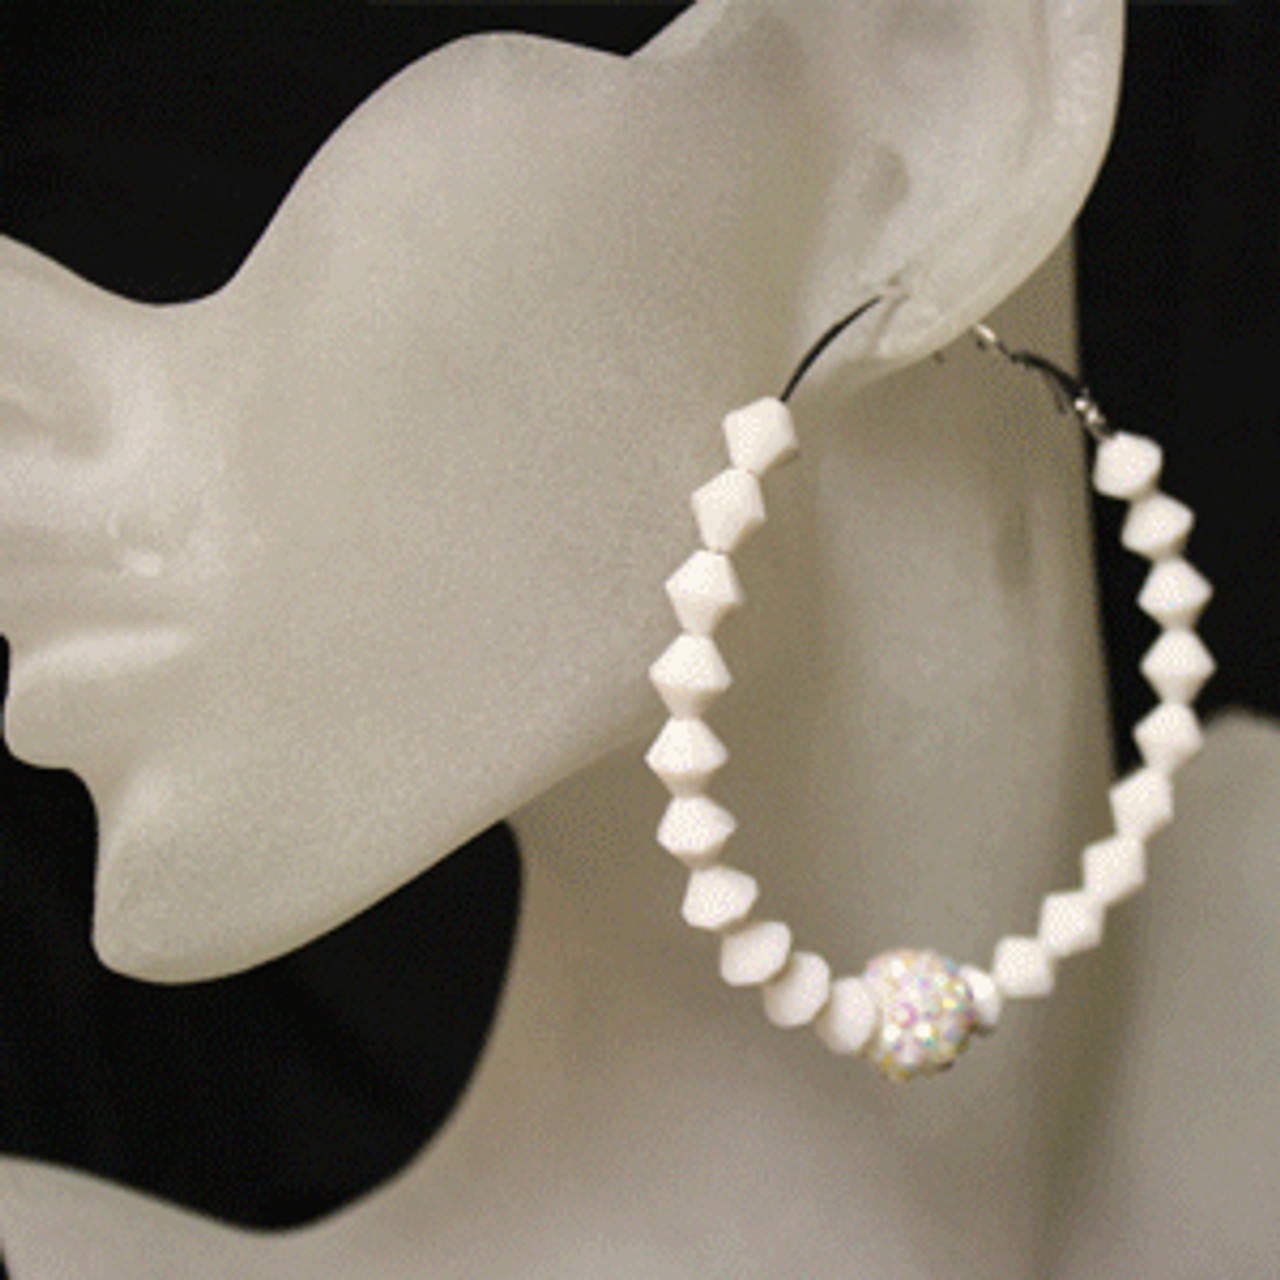 White diamond bead earring